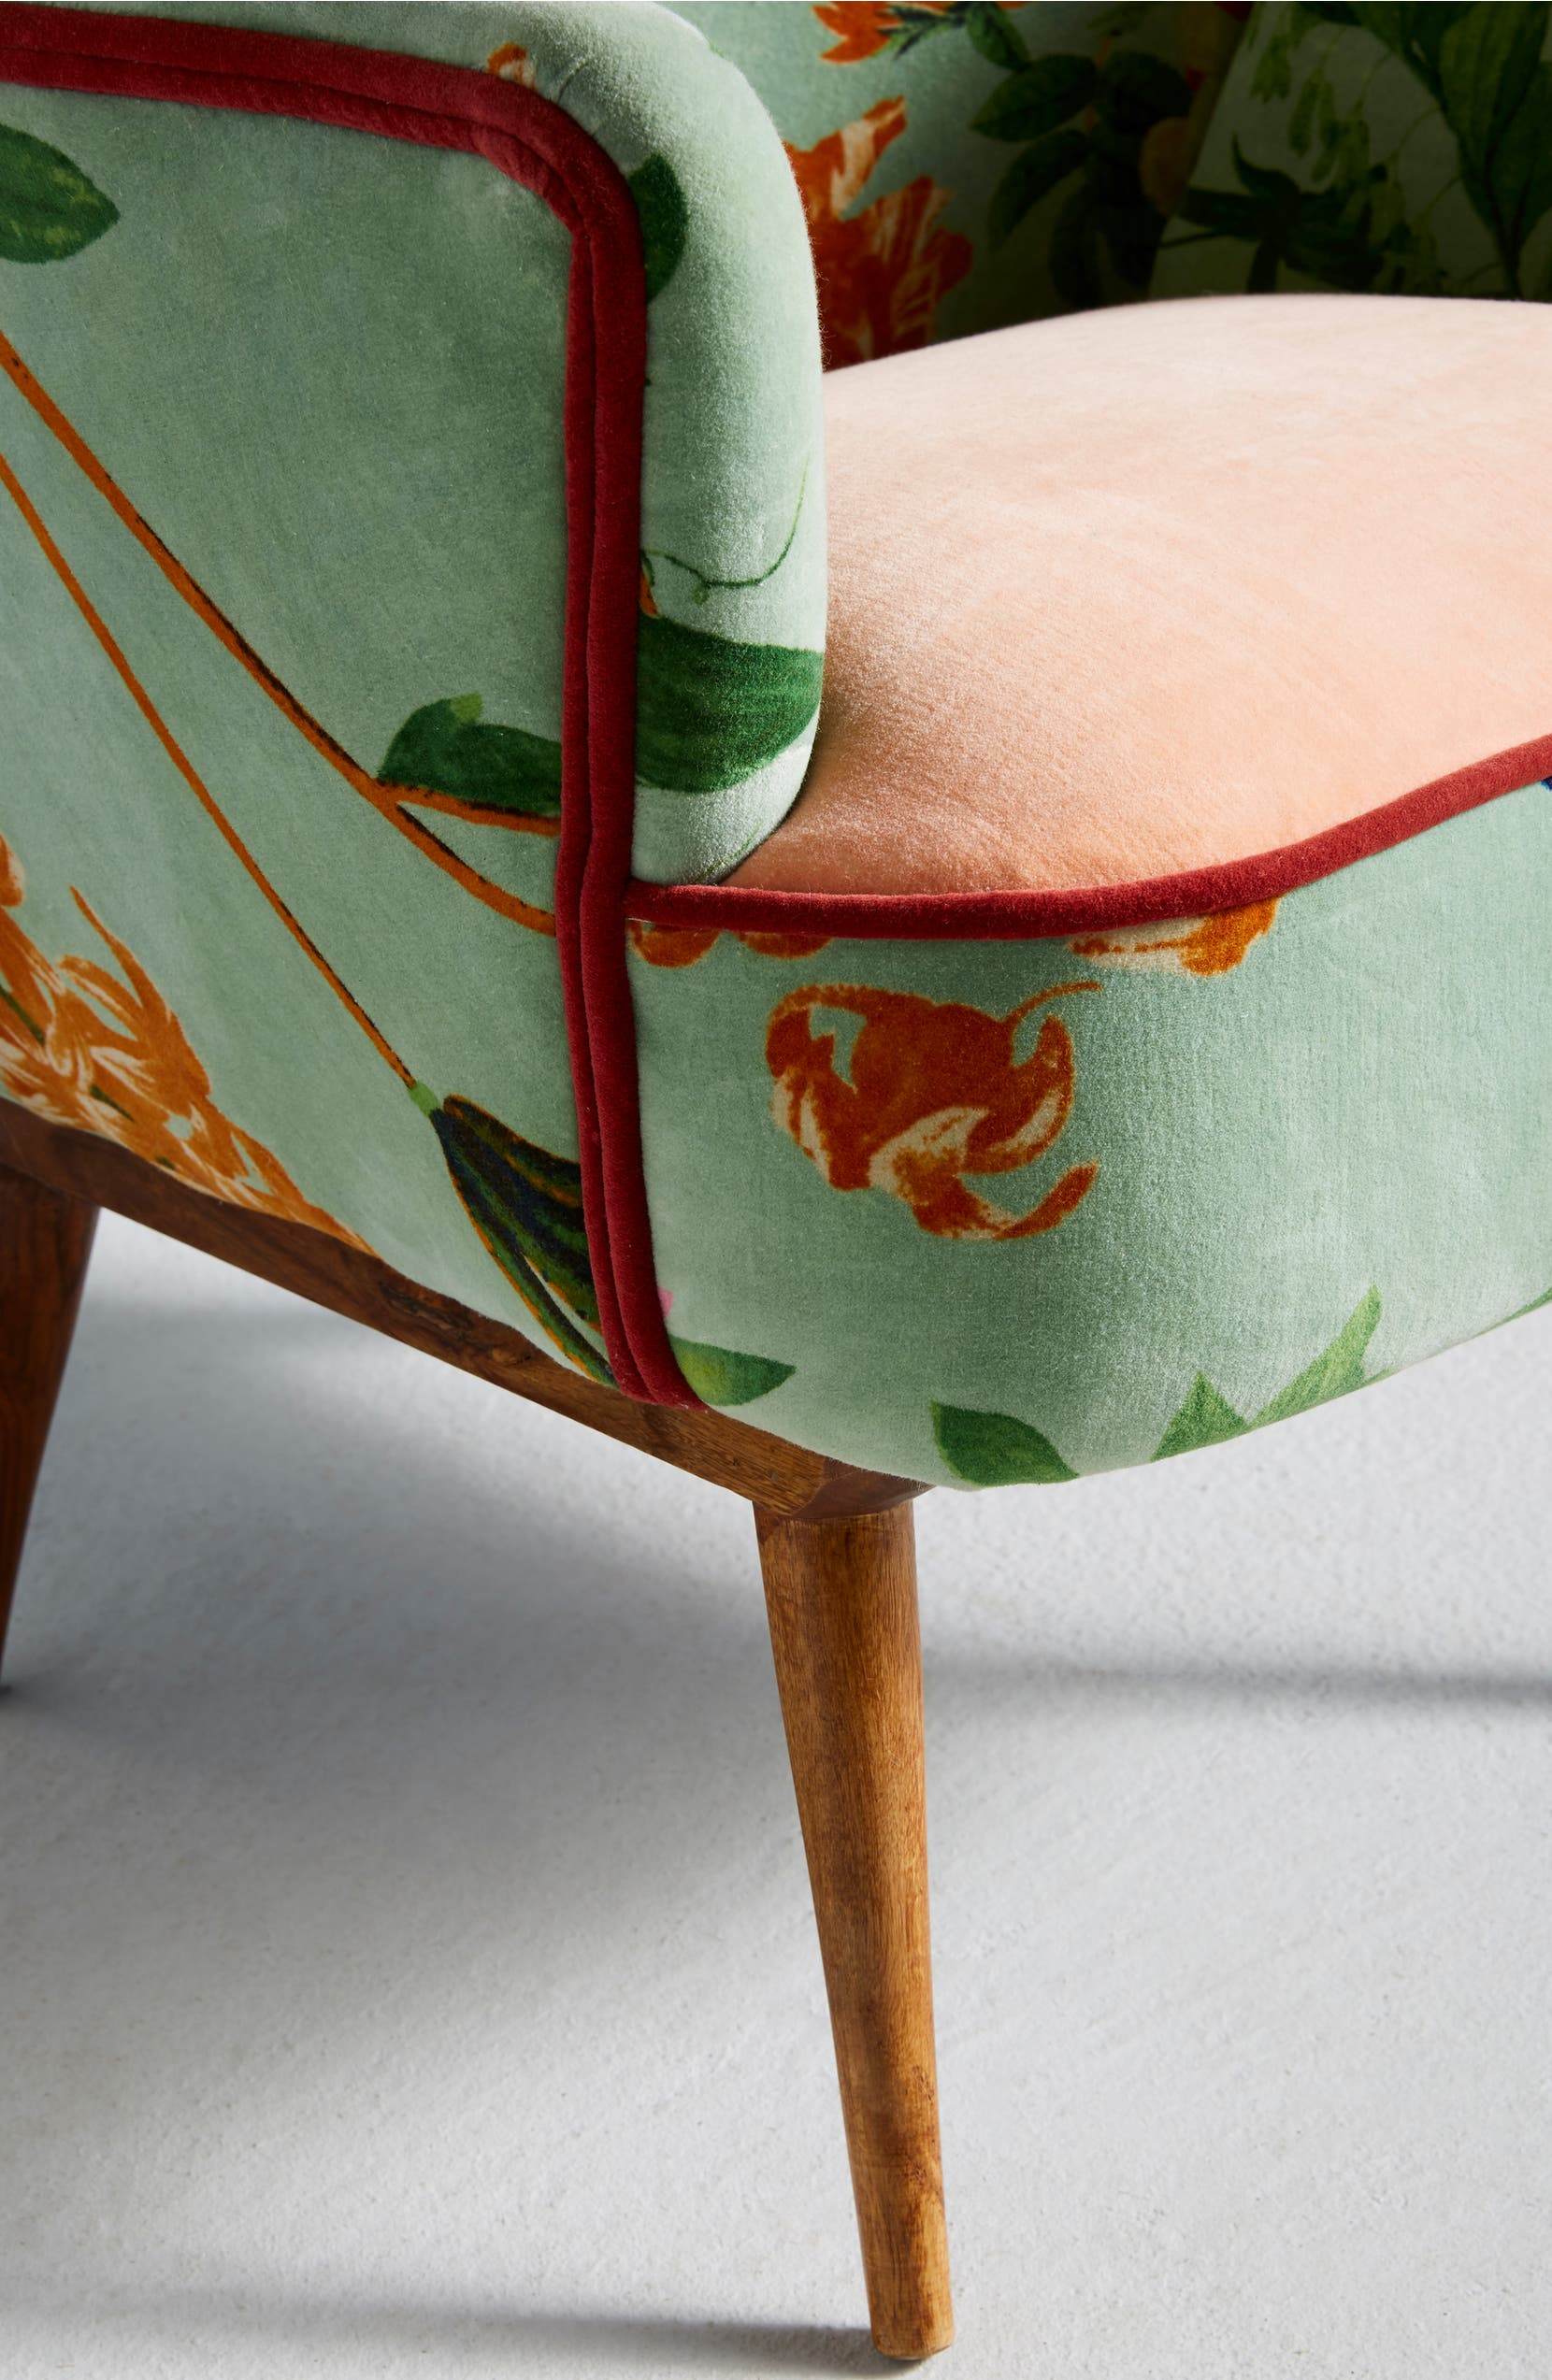 Groovy Anthropologie Floret Accent Chair Nordstrom Gamerscity Chair Design For Home Gamerscityorg